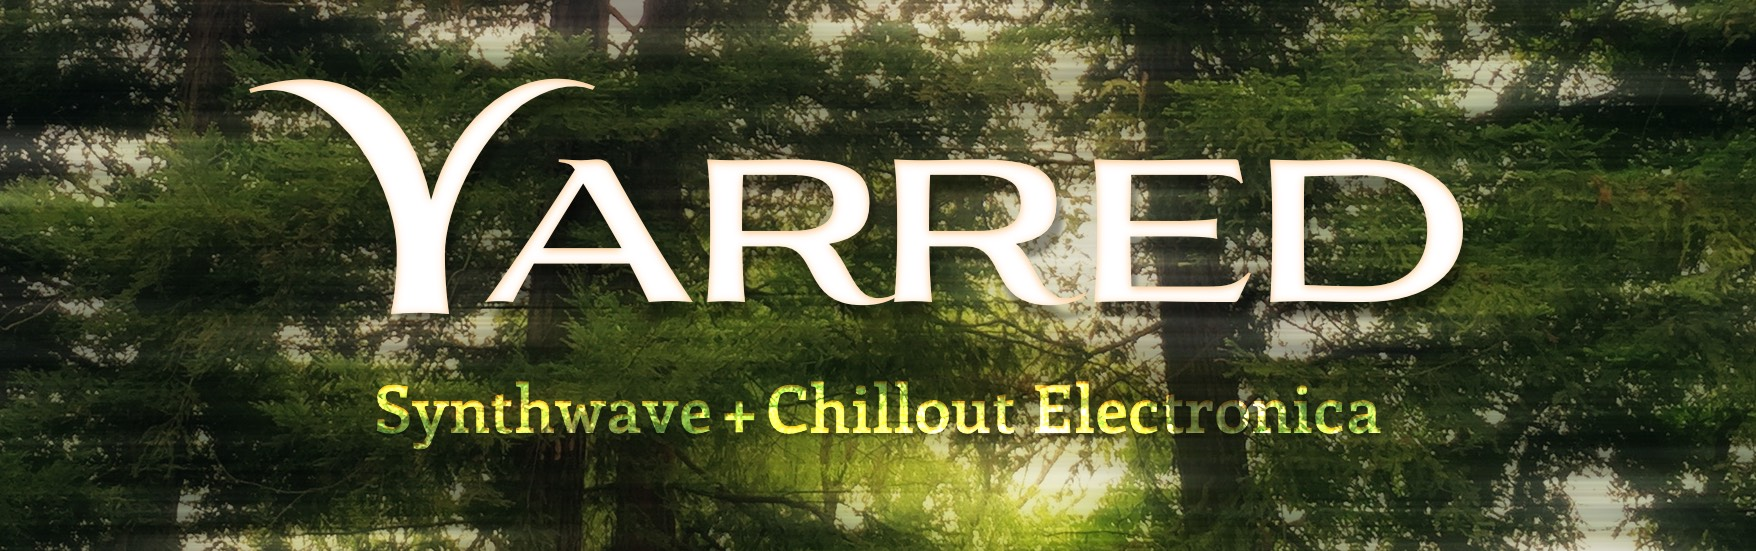 Yarred: Synthwave and Chillout